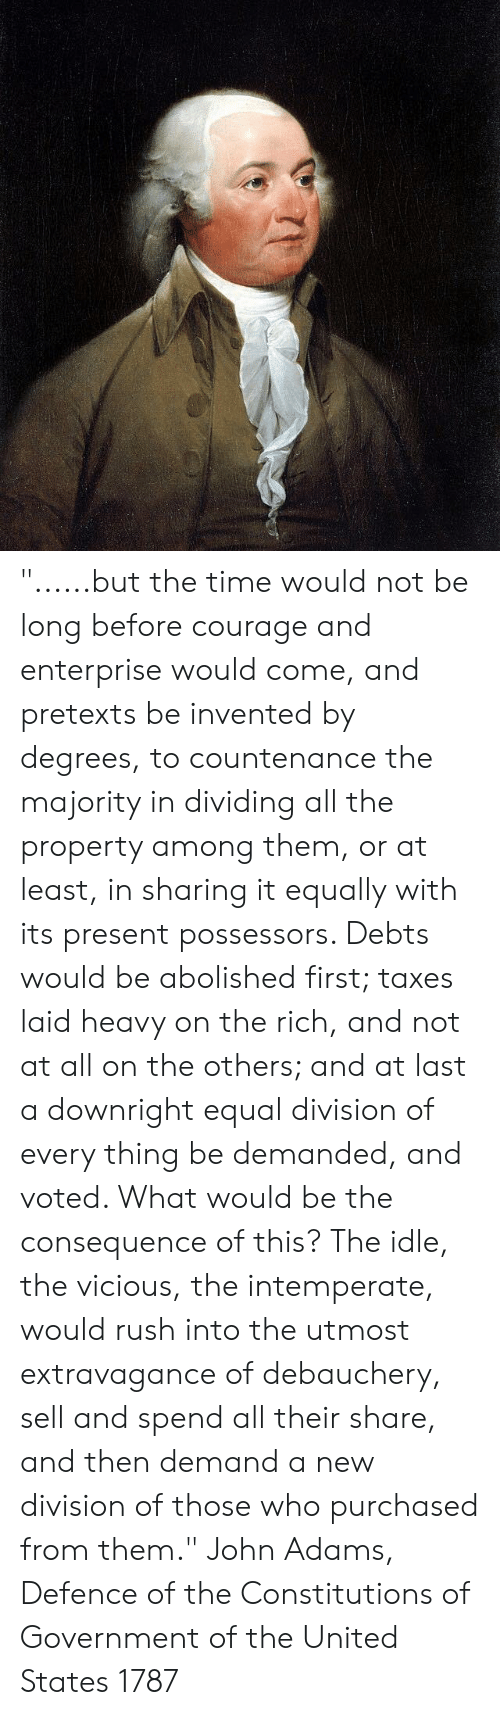 """Memes, Taxes, and Enterprise: """"......but the time would not be long before courage and enterprise would come, and pretexts be invented by degrees, to countenance the majority in dividing all the property among them, or at least, in sharing it equally with its present possessors. Debts would be abolished first; taxes laid heavy on the rich, and not at all on the others; and at last a downright equal division of every thing be demanded, and voted. What would be the consequence of this? The idle, the vicious, the intemperate, would rush into the utmost extravagance of debauchery, sell and spend all their share, and then demand a new division of those who purchased from them.""""  John Adams, Defence of the Constitutions of Government of the United States 1787"""